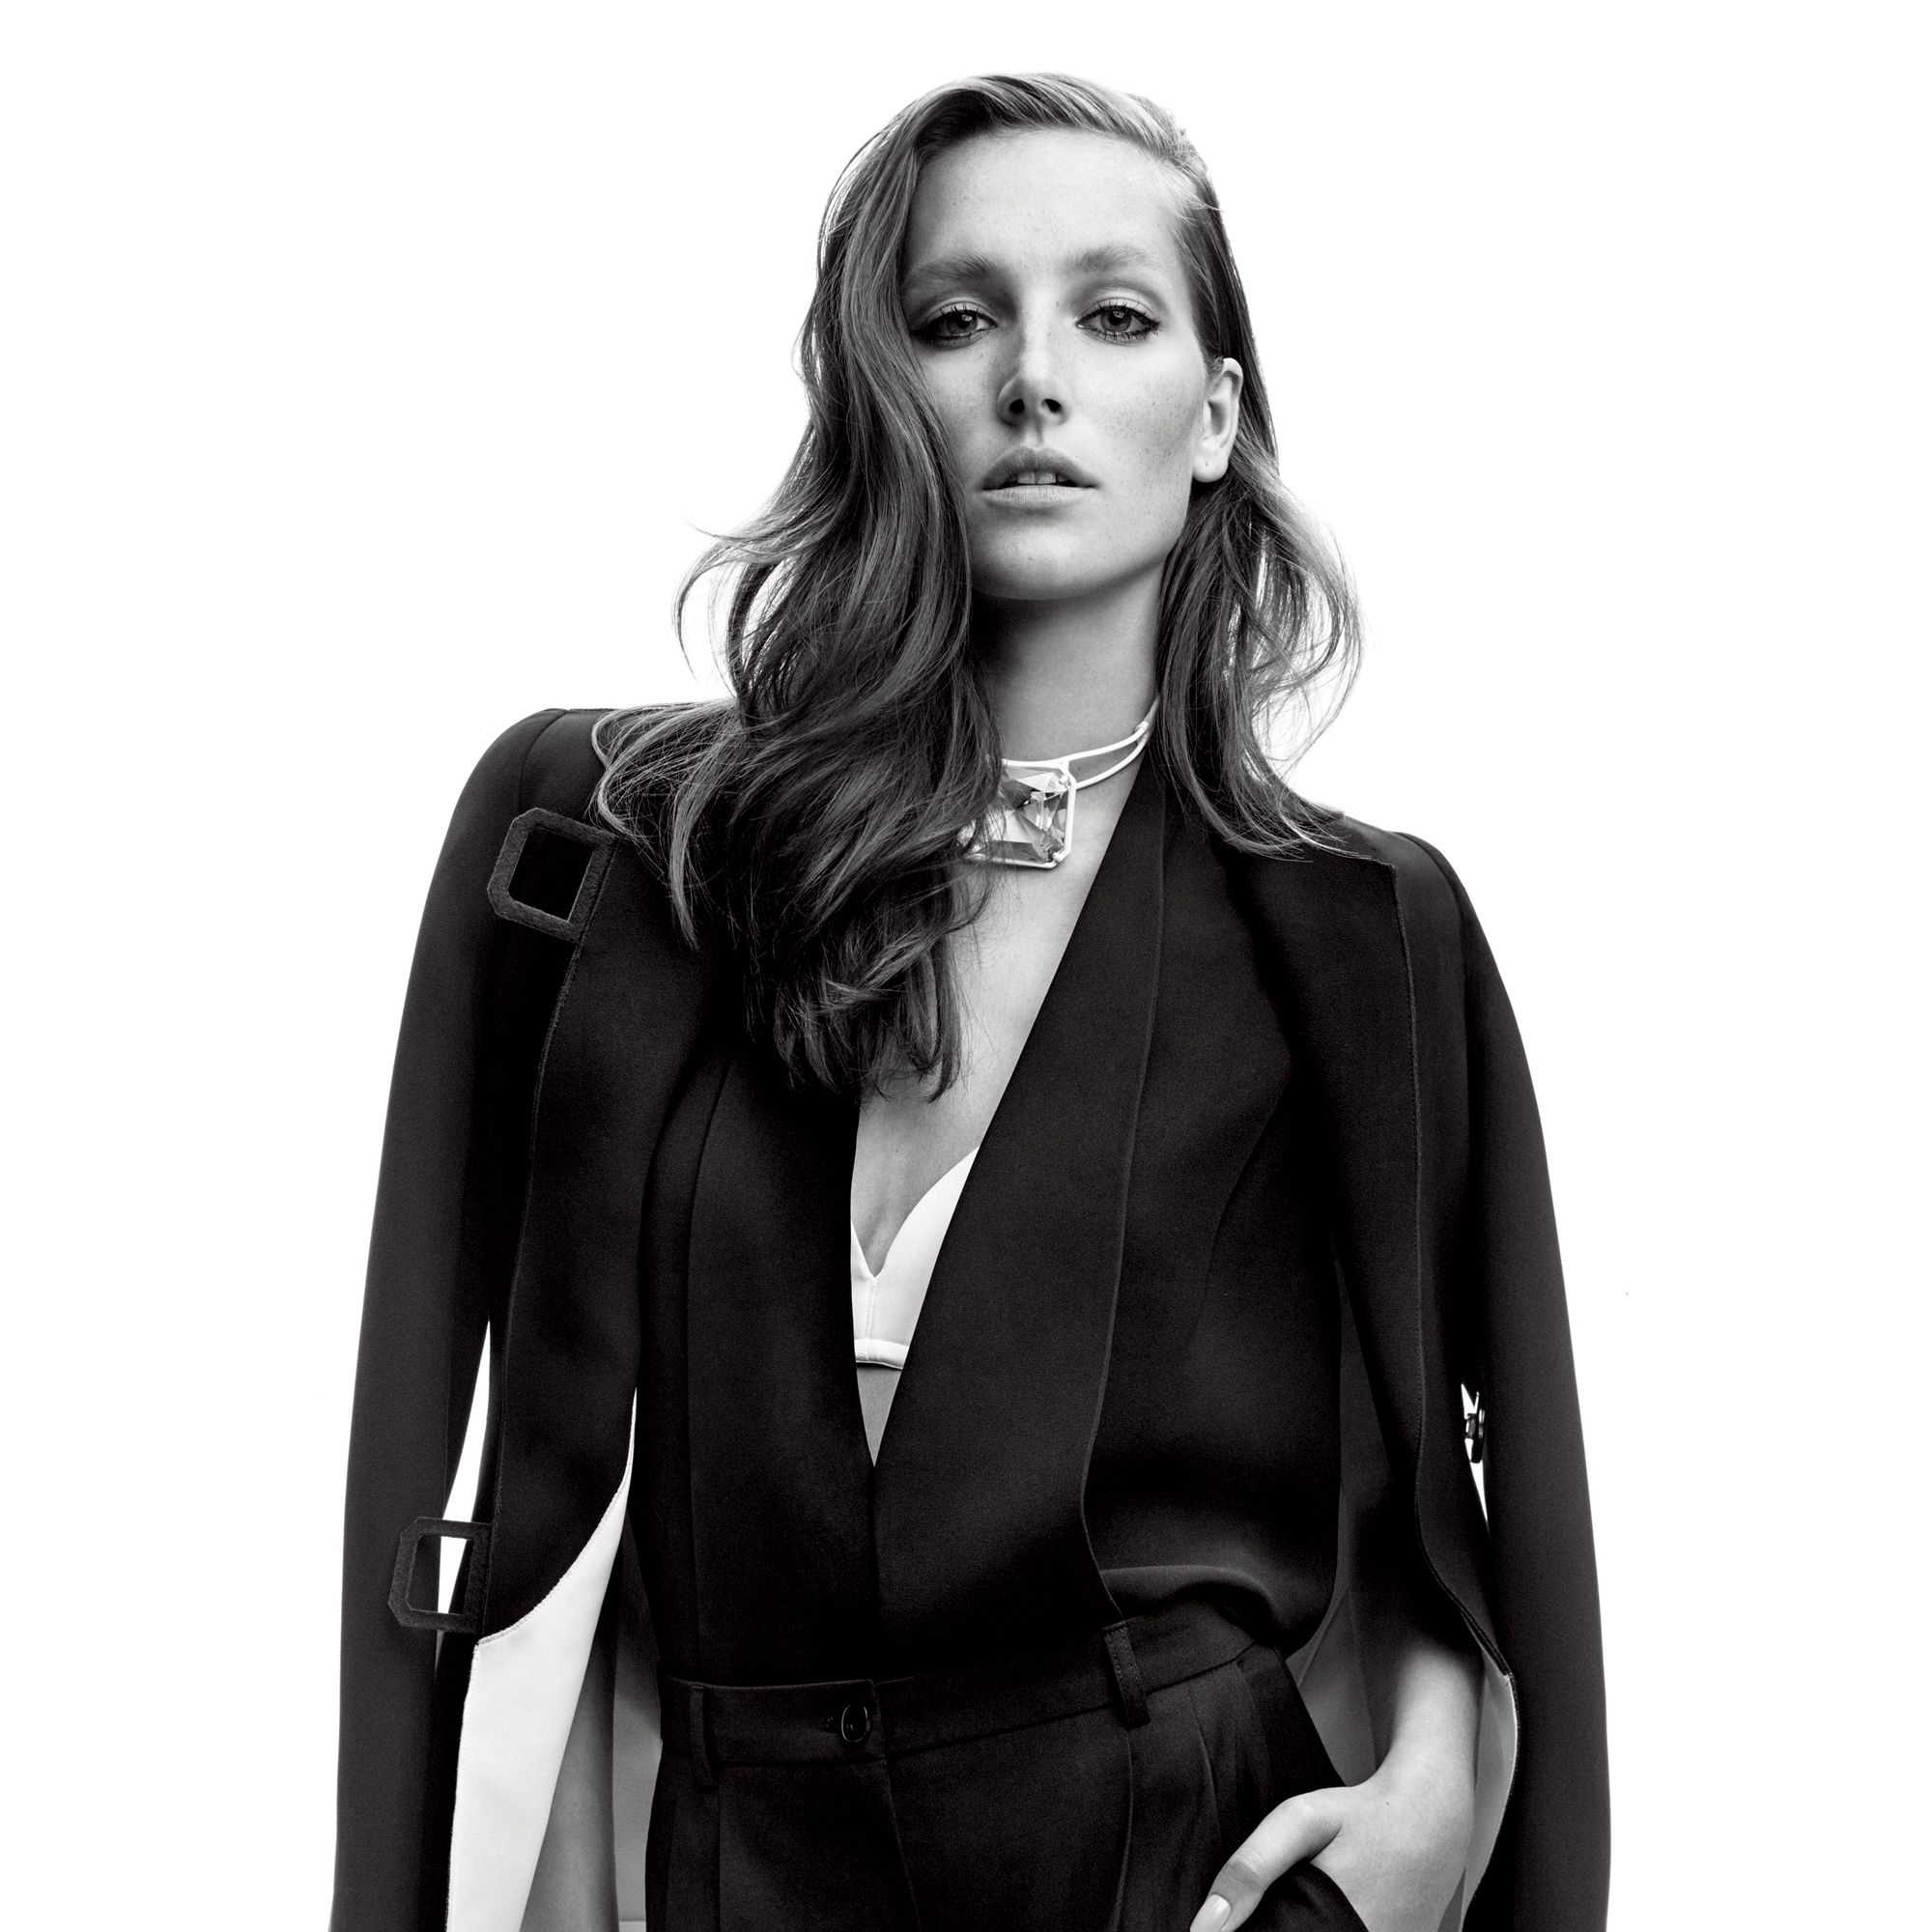 """<p><strong>Giorgio Armani</strong> jacket, $5,795, vest, $2,725, and pants, $1,175, 212-988-9191&#x3B; <strong>Wolford </strong>bra, $150, <a href=""""http://company.wolford.com/?lang=en"""" target=""""_blank"""">wolford.com</a>&#x3B; <strong>Rosie Assoulin </strong>choker, $695, Fivestory New York: 212-288-1338.</p><p><strong>BEAUTY BAZAAR</strong> For instant volume, spritz your strands with Not Your Mother's Haircare Double Take Dry Finish Texture Spray, $7, <a href=""""http://www.ulta.com/ulta/browse/productDetail.jsp?productId=xlsImpprod12041711"""" target=""""_blank"""">ulta.com</a>.</p>"""